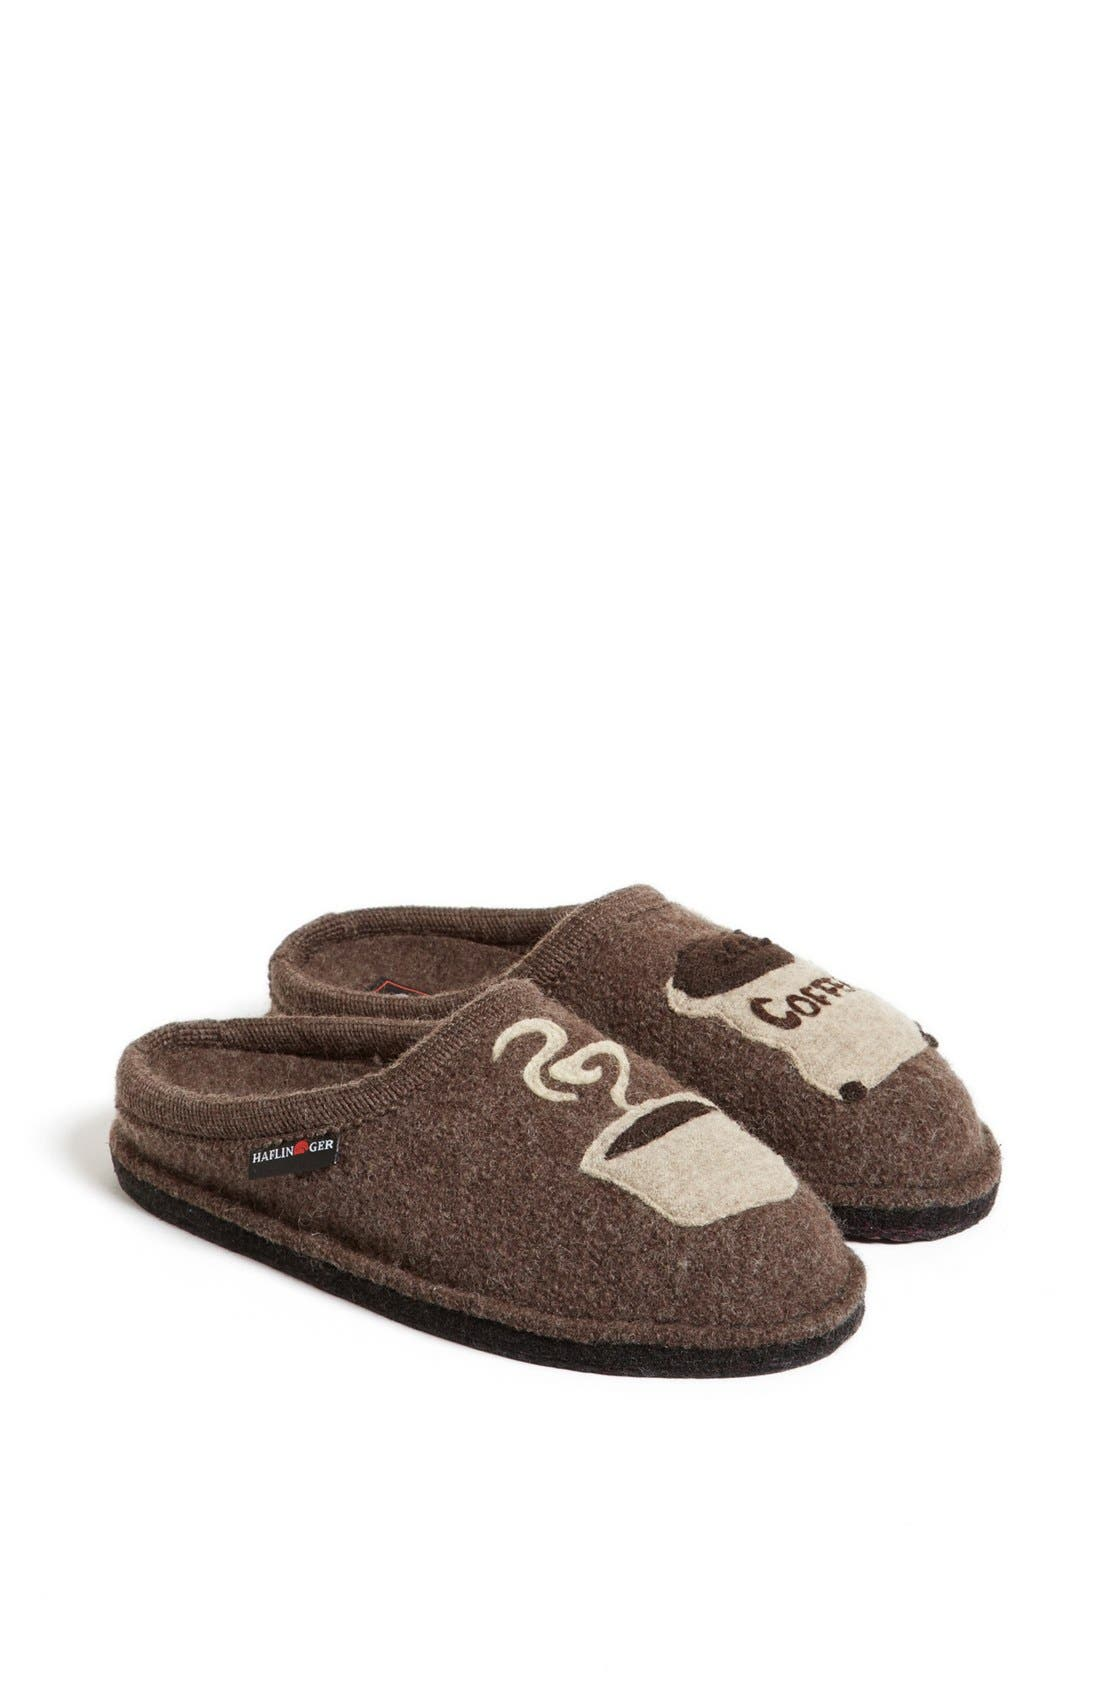 Main Image - Haflinger 'Coffee' Slipper